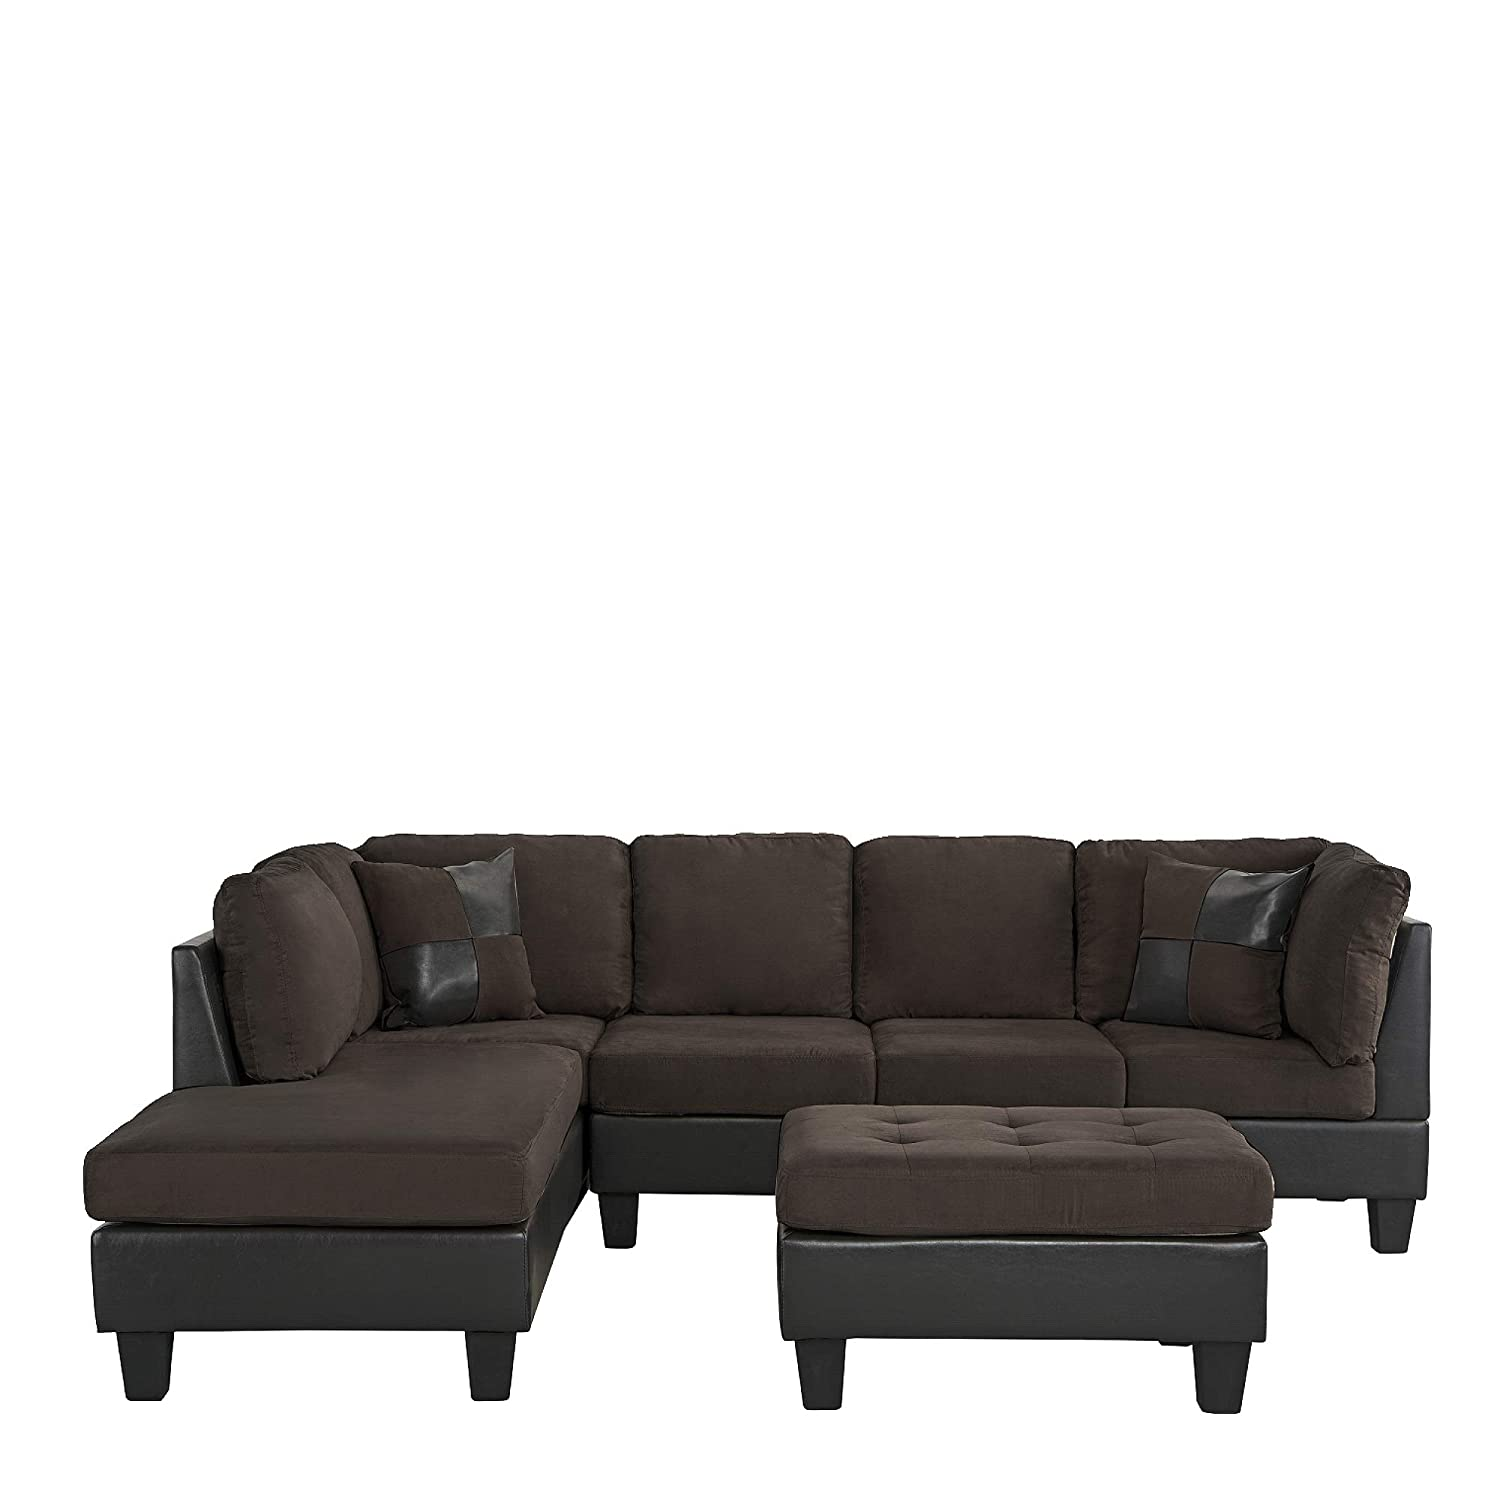 Amazon.com: 3 Piece Modern Microfiber Faux Leather Sectional Sofa ...